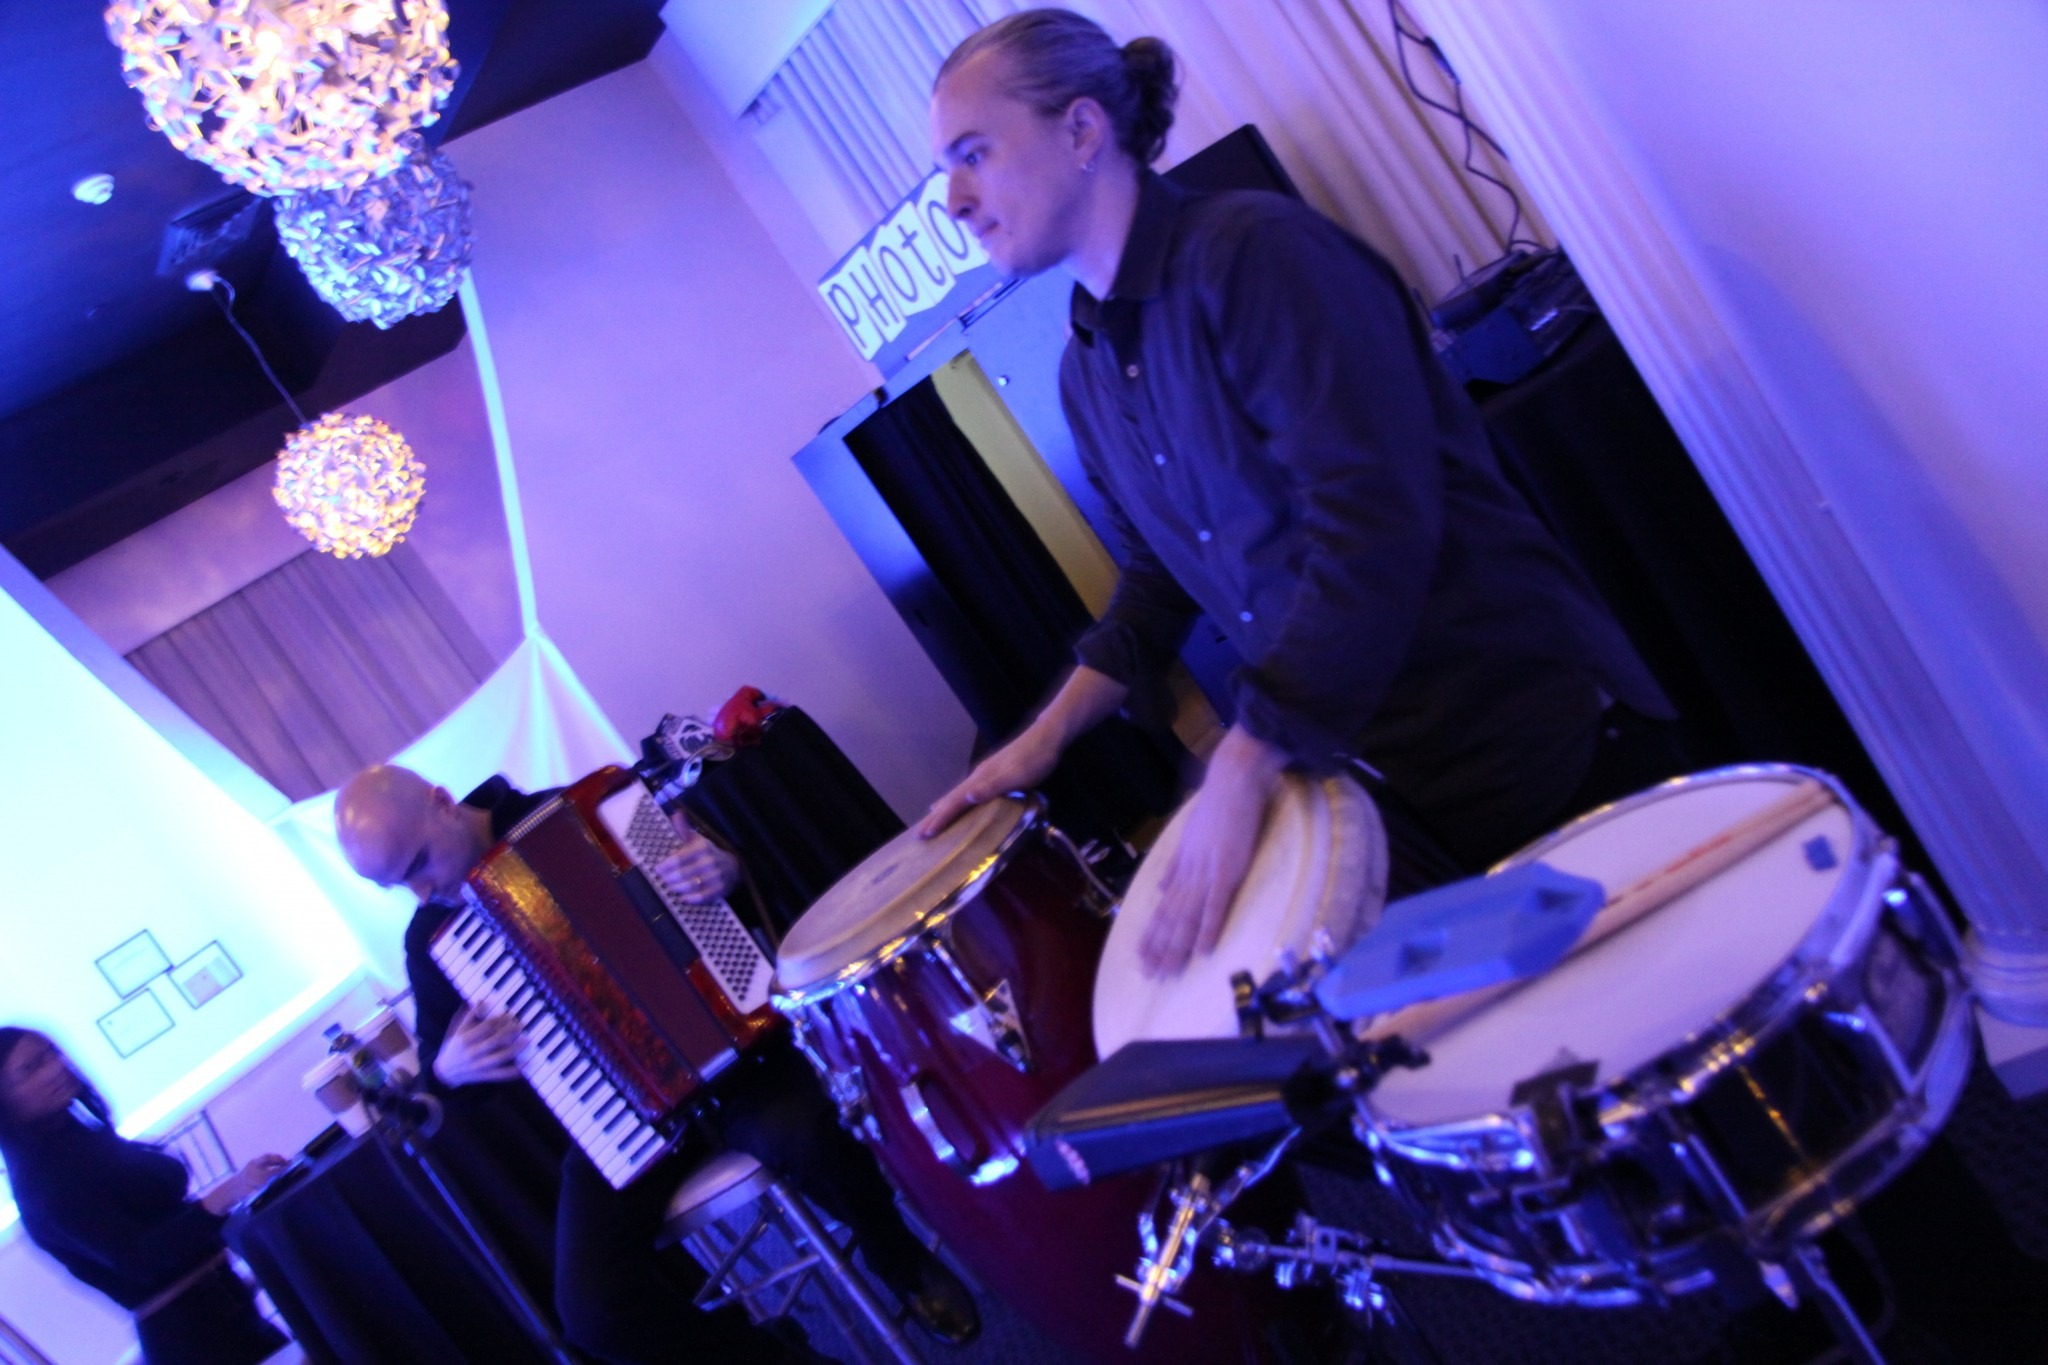 Percussionist with Congas Event Planning NYC, Fairfield CT, Hamptons, Weddings, Bar Mitzvah, Bat Mitzvah, Corporate Events, Sweet 16, Event DJs, Bands